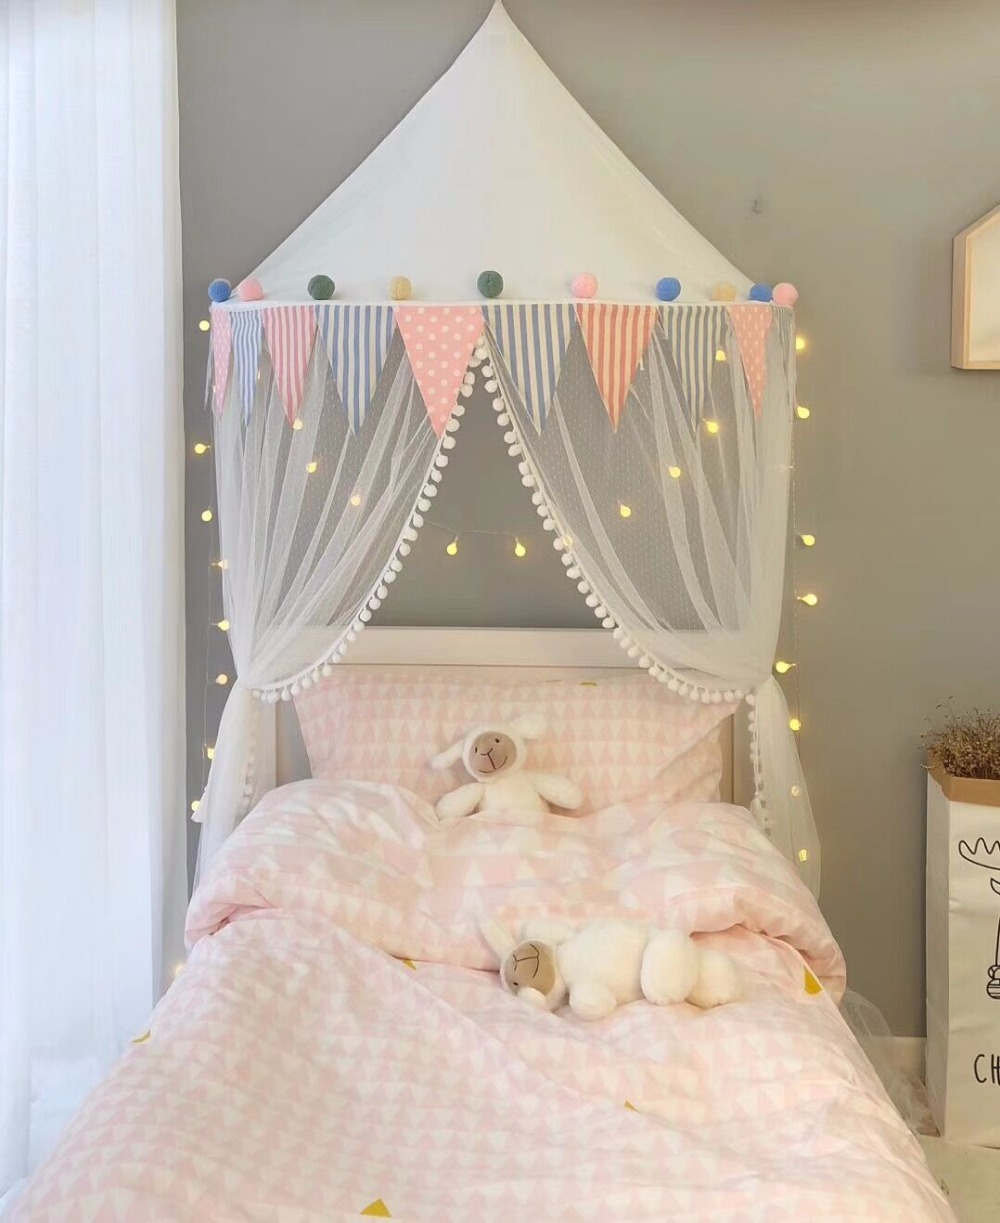 Bed Gordijn Kind Us 44 95 30 Off 100 Katoen Tipi Tent Kids Baby Luifel Peuter Bed Gordijn Decoracion Bebe Klamboe Teepees Voor Kinderen Playhouse Play Tent In 100